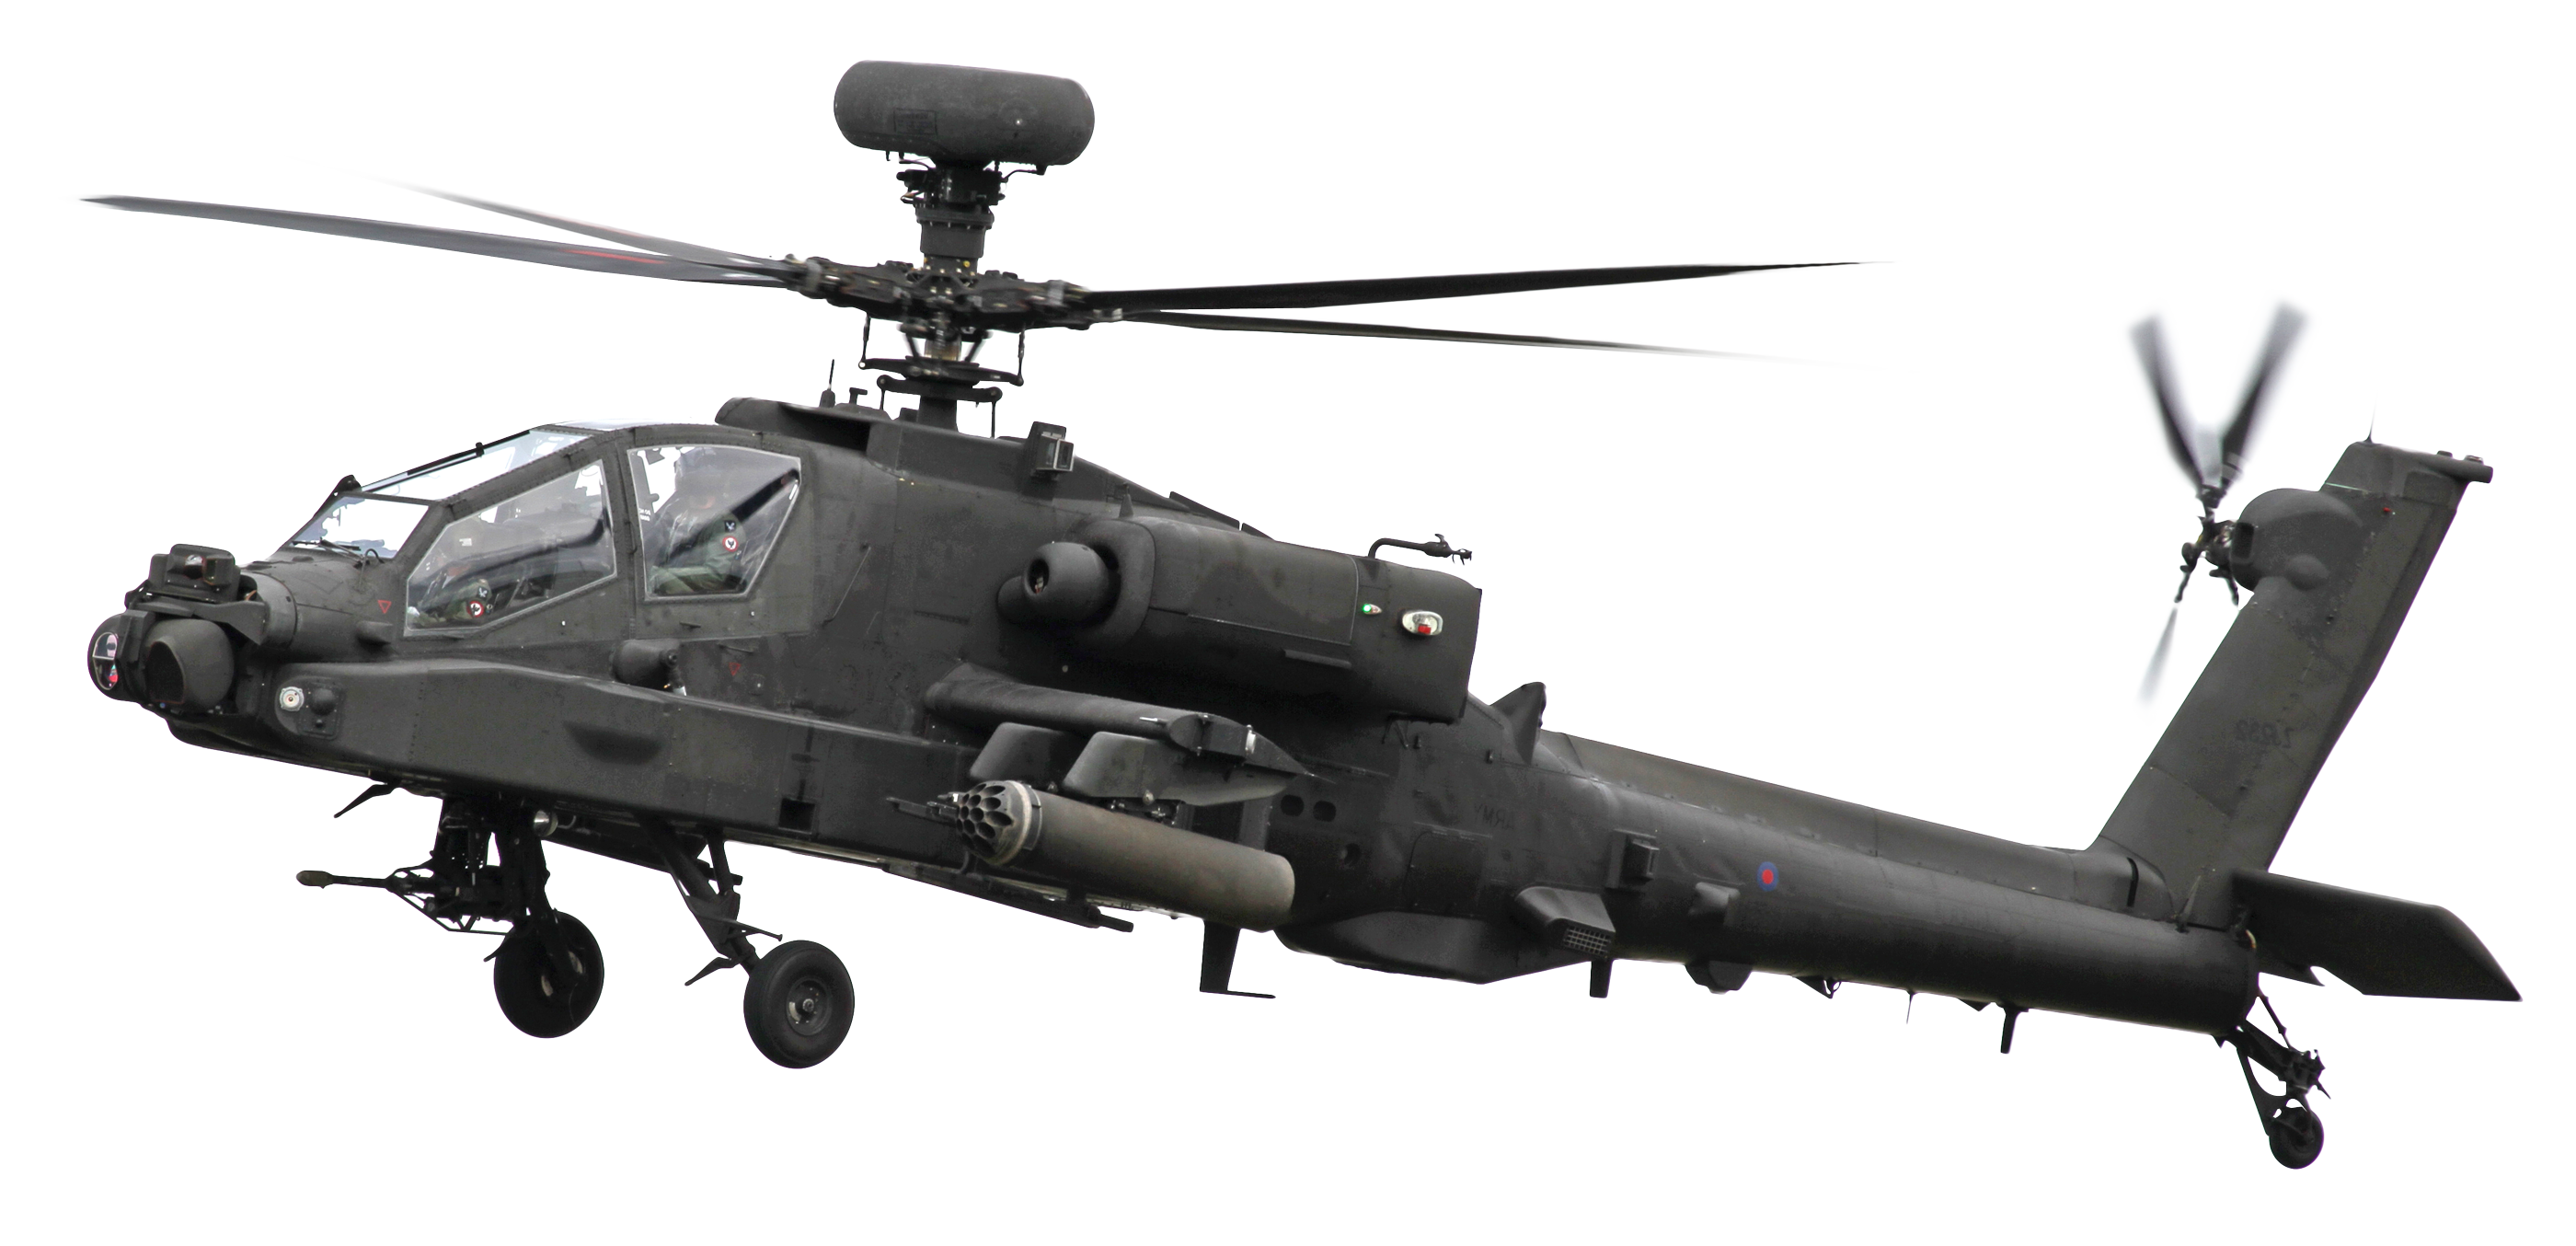 Army Helicopter Png - Army Helicopter PNG Transparent Free Images | PNG Only